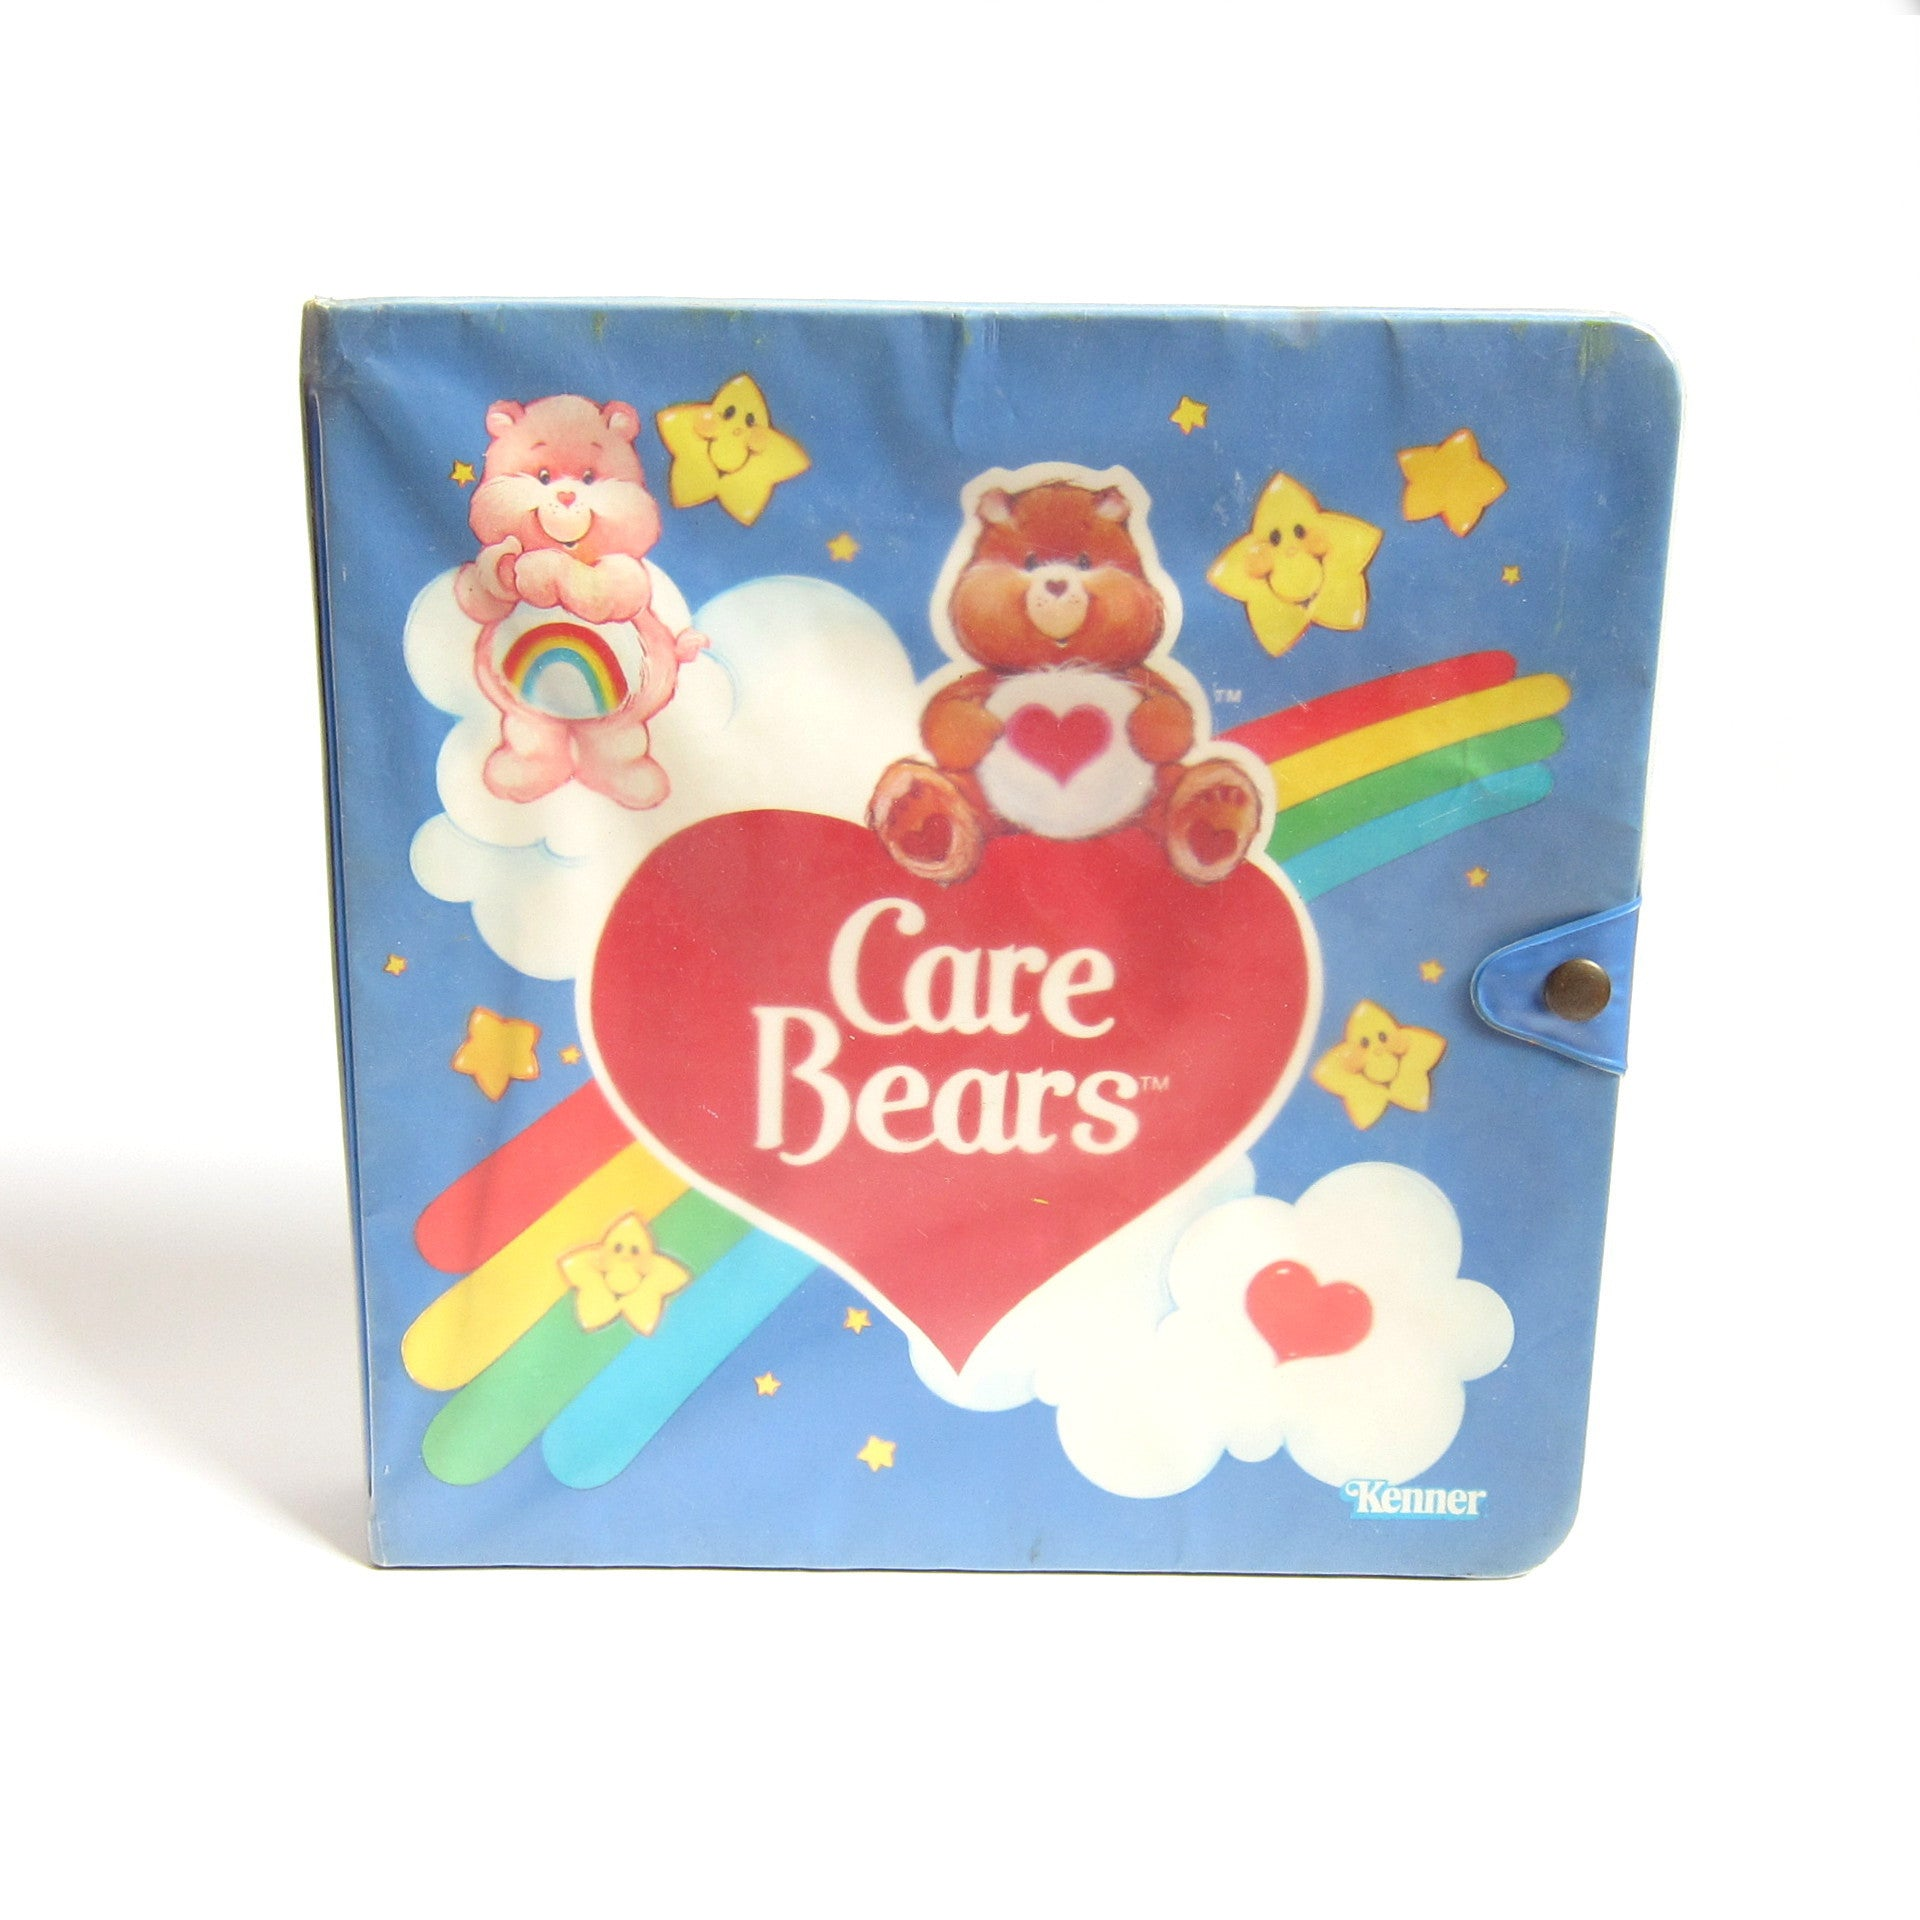 Care Bears Storybook miniature figurine storage case